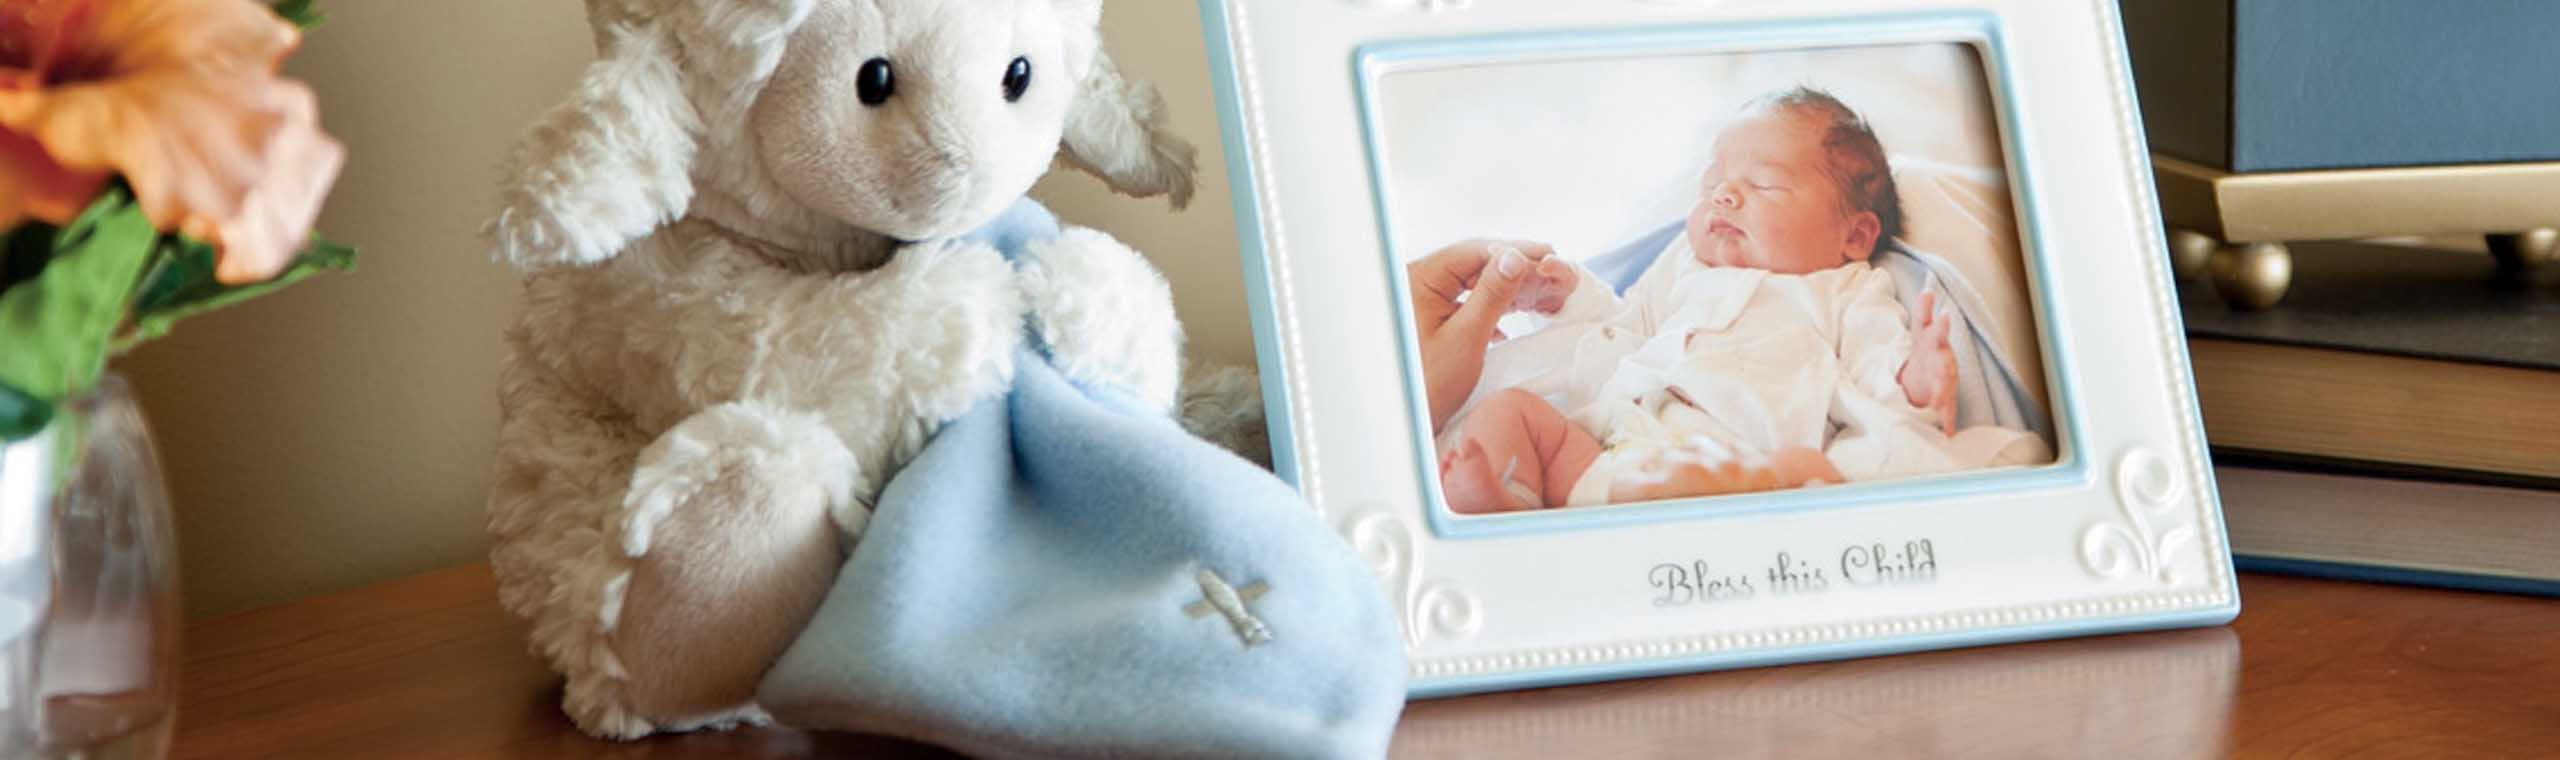 a lamb on a table holding a blue blanket next to a blue picture frame of new born